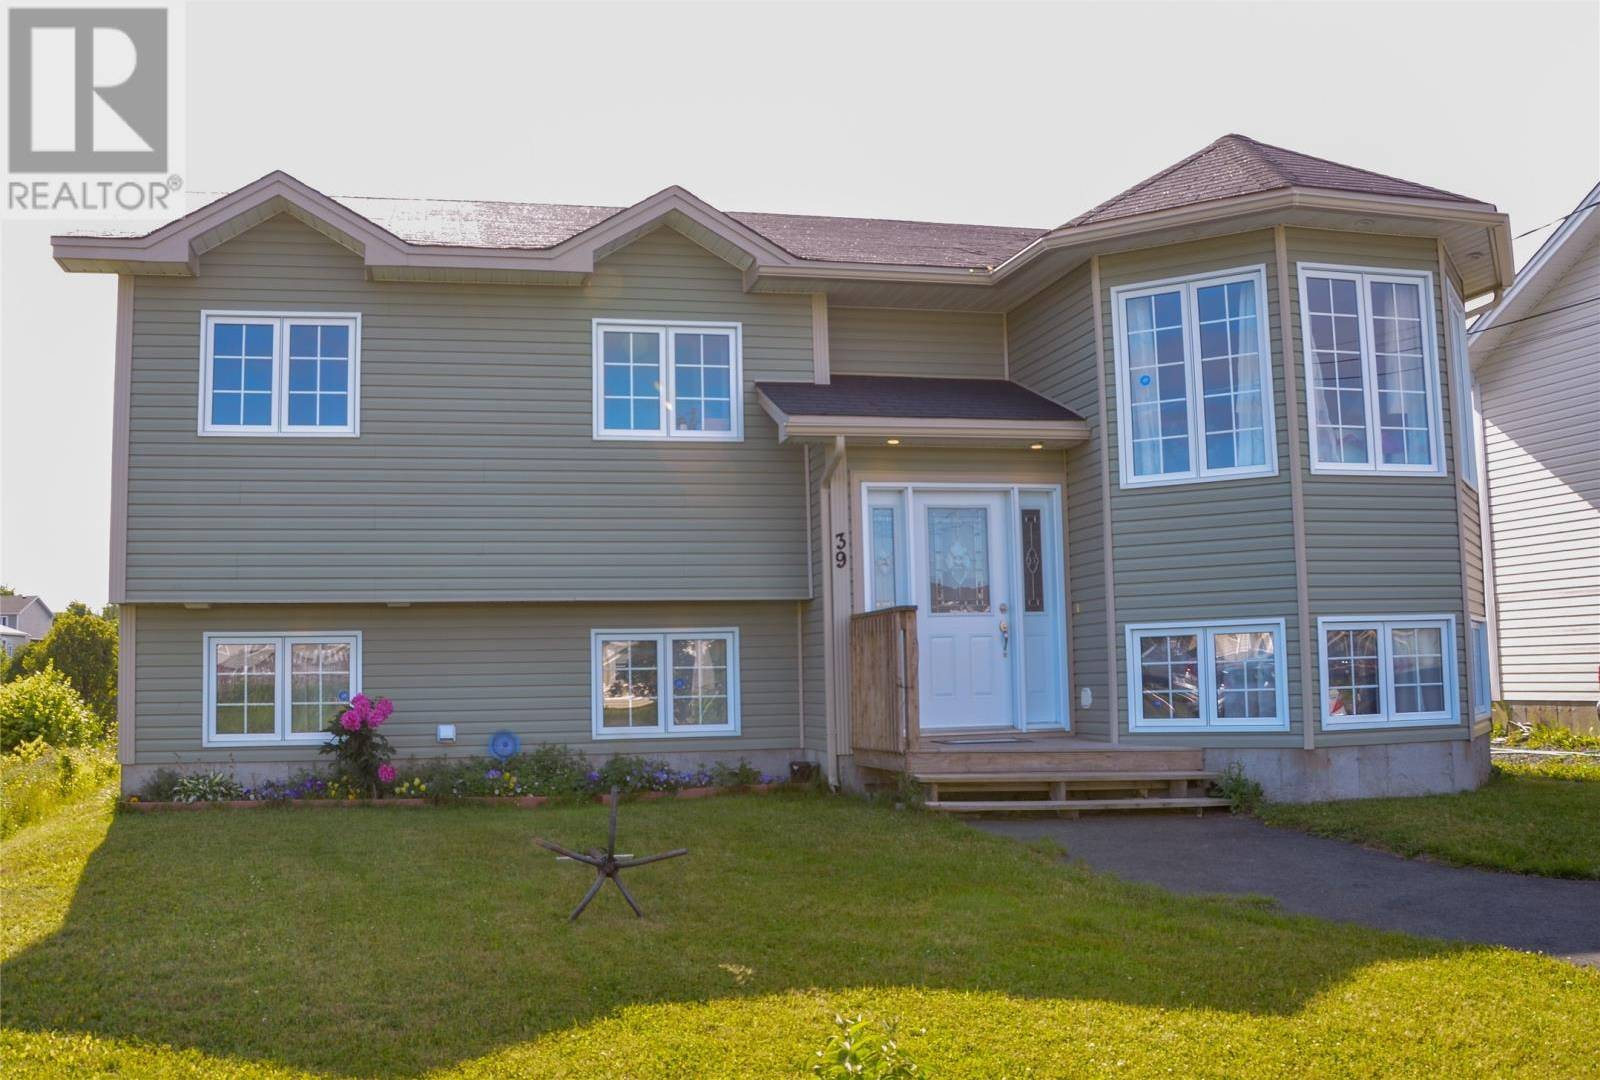 House for sale at 39 Barnacle Rd Conception Bay South Newfoundland - MLS: 1205483